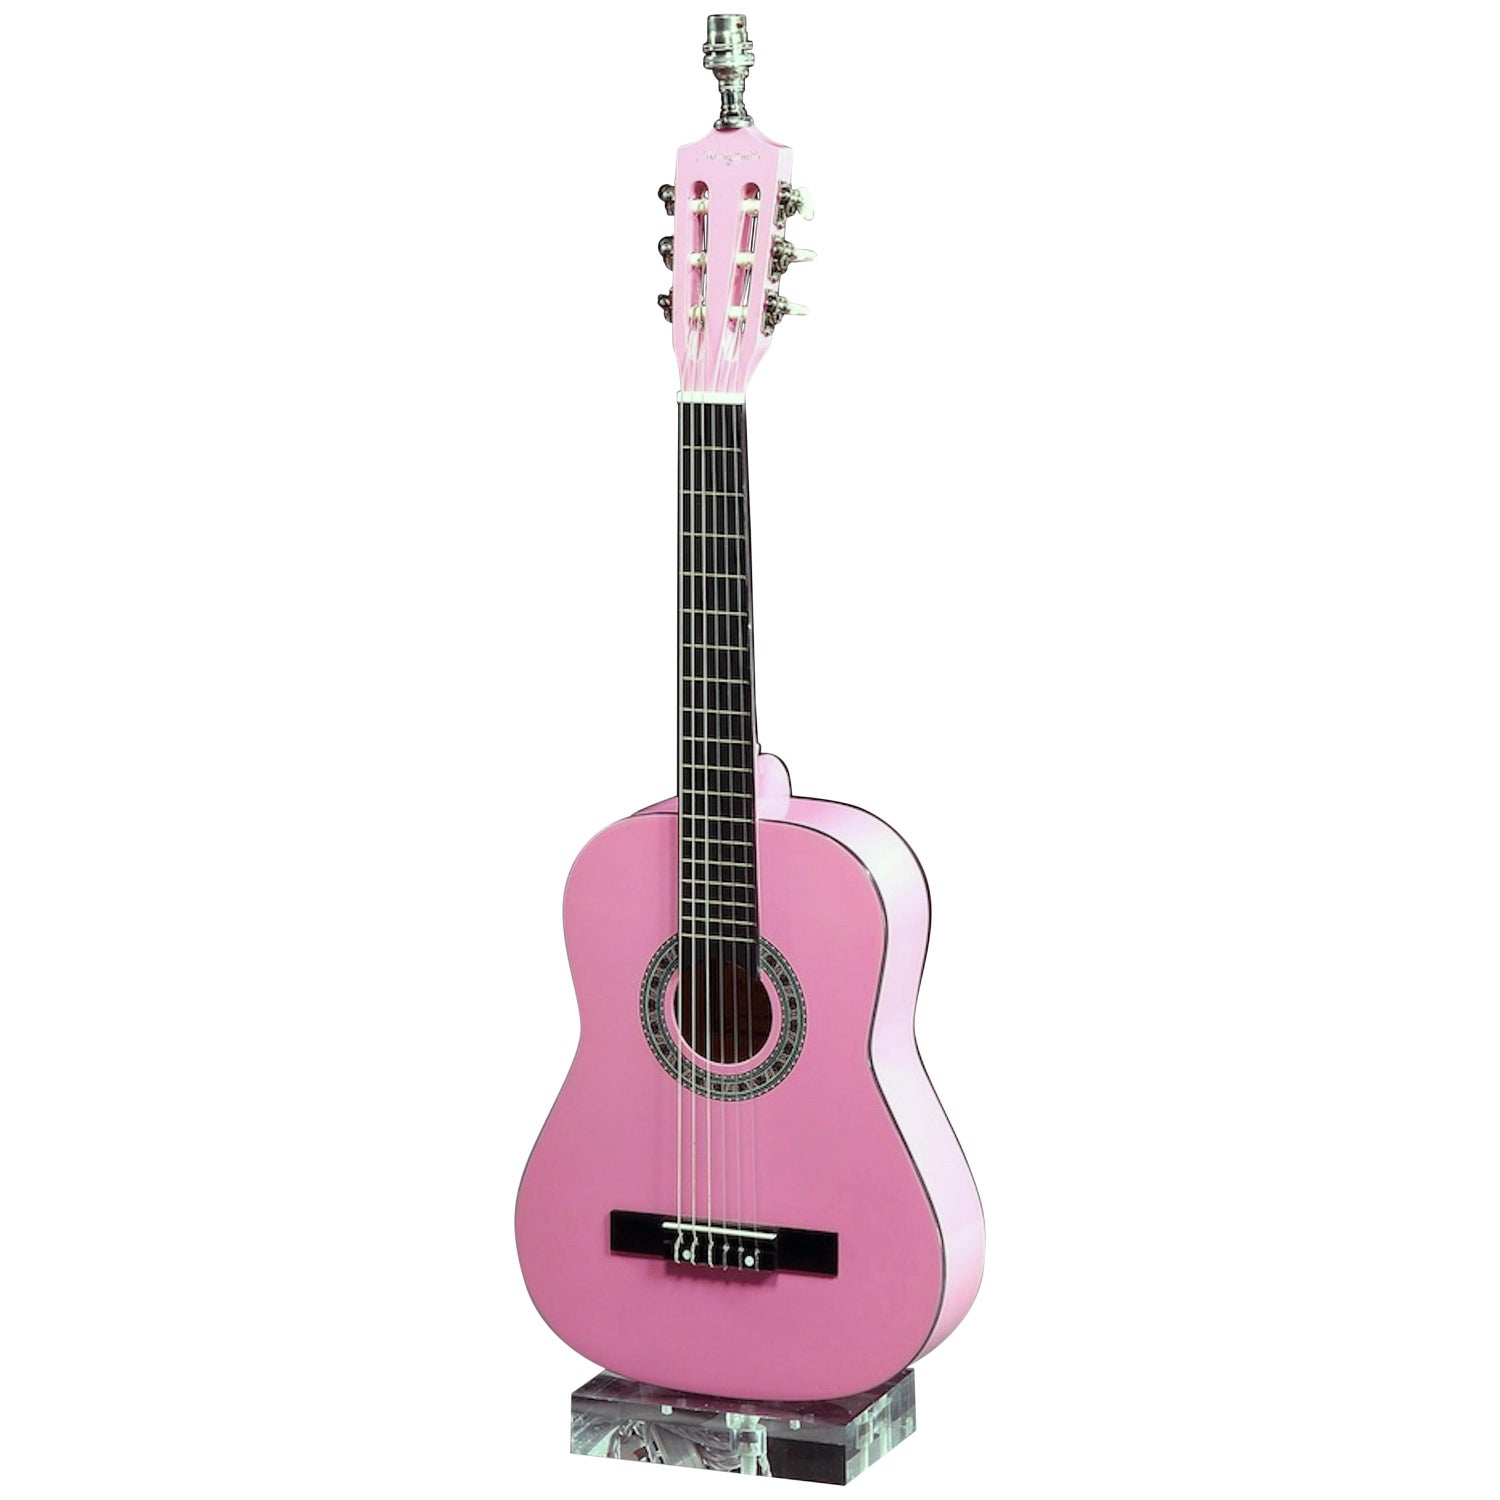 Table Lamp, Martin Smith, Classical Acoustic Guitar, Pink Rock and Roll